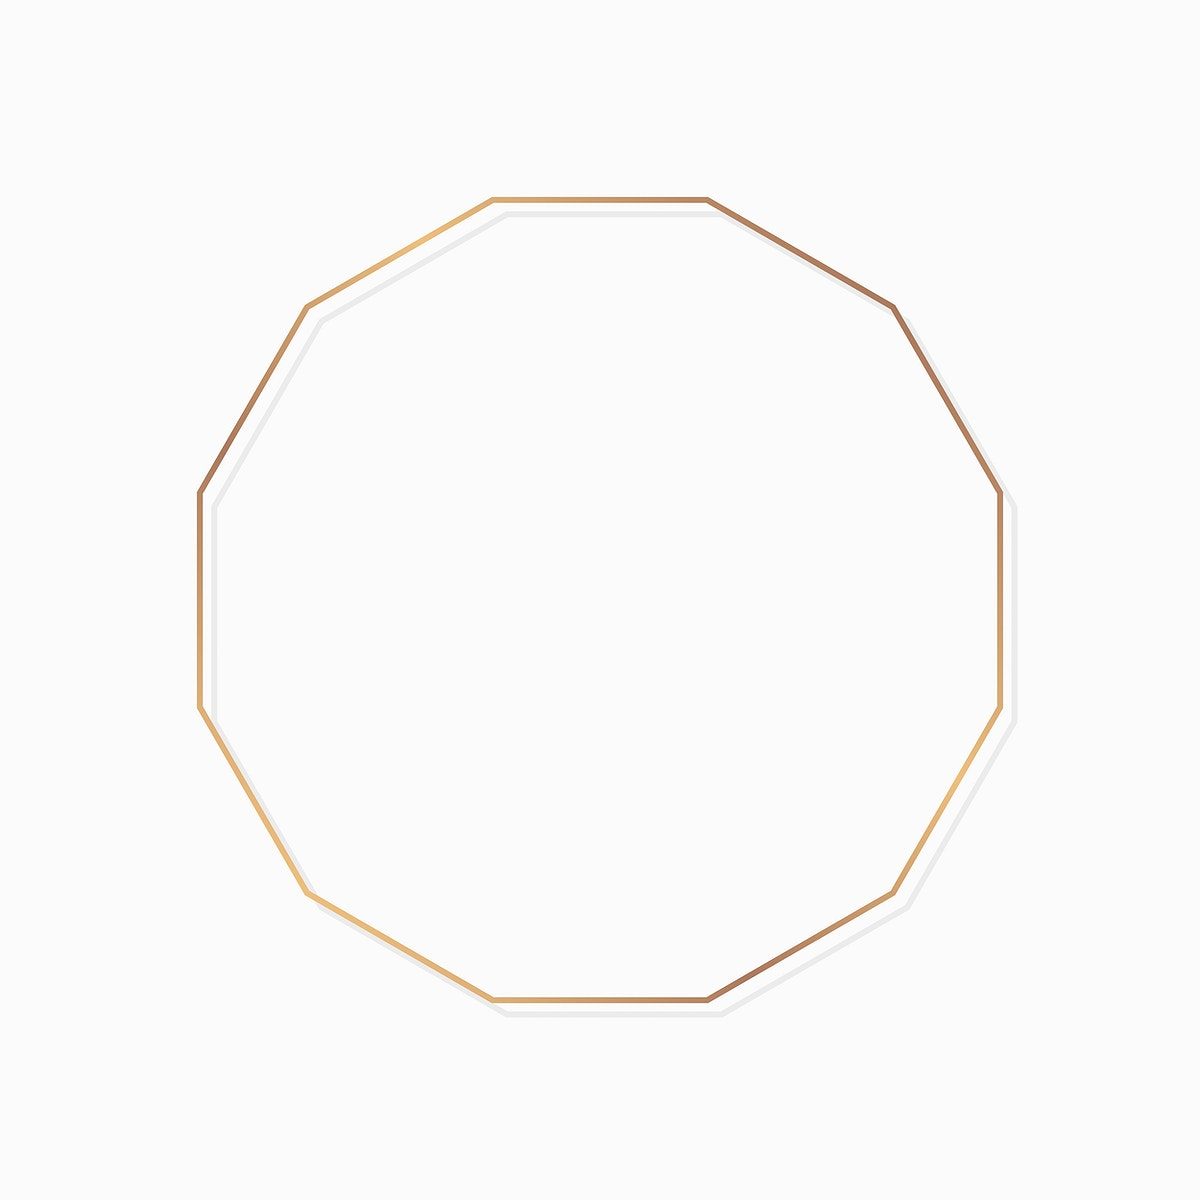 Polygon gold frame on white background vector